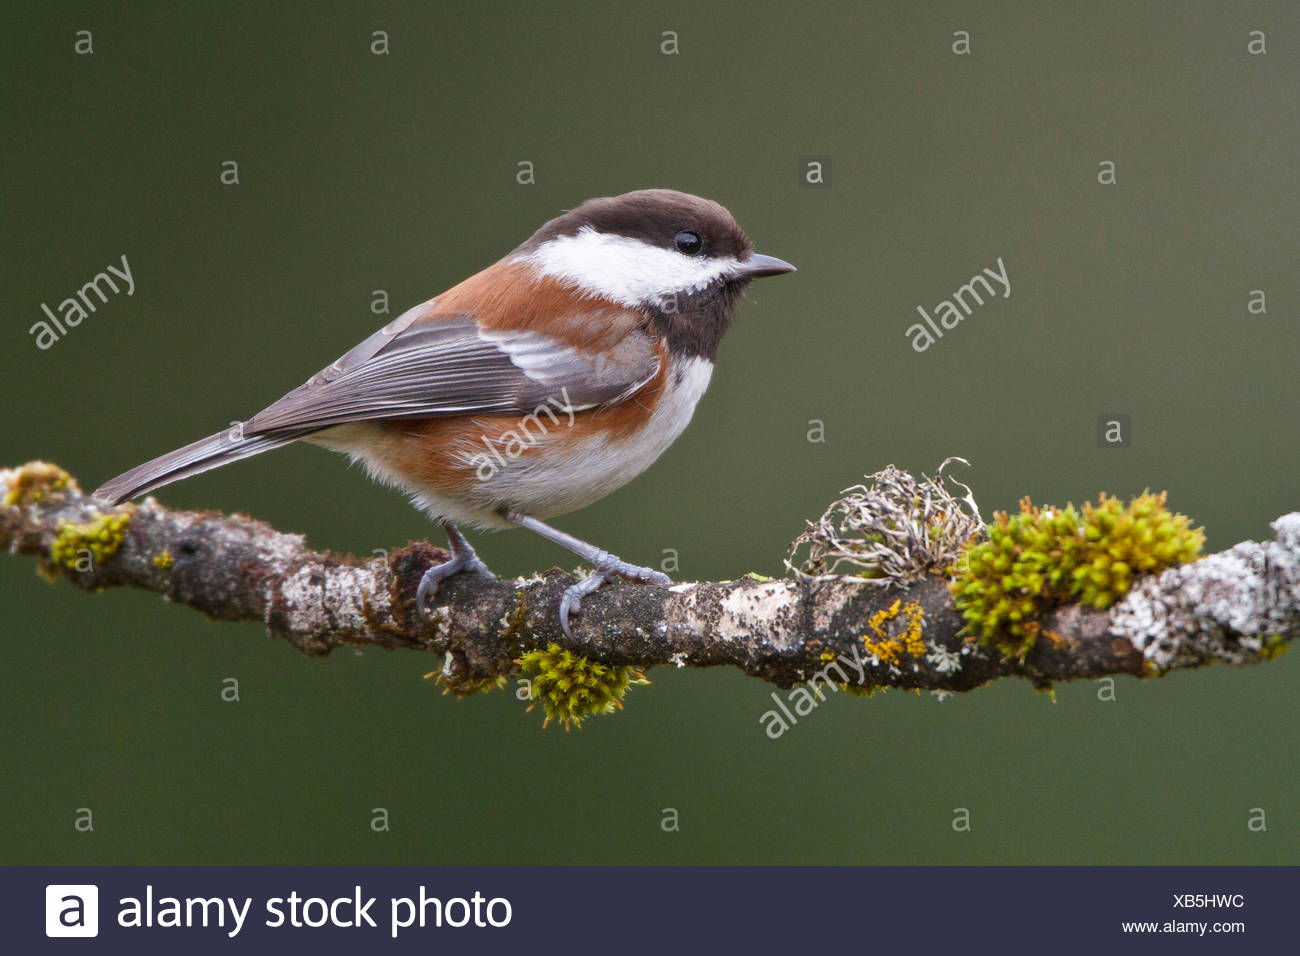 Chestnut-backed Chickadee (Poecile rufescens) perched on a branch in Victoria, BC, Canada. - Stock Image